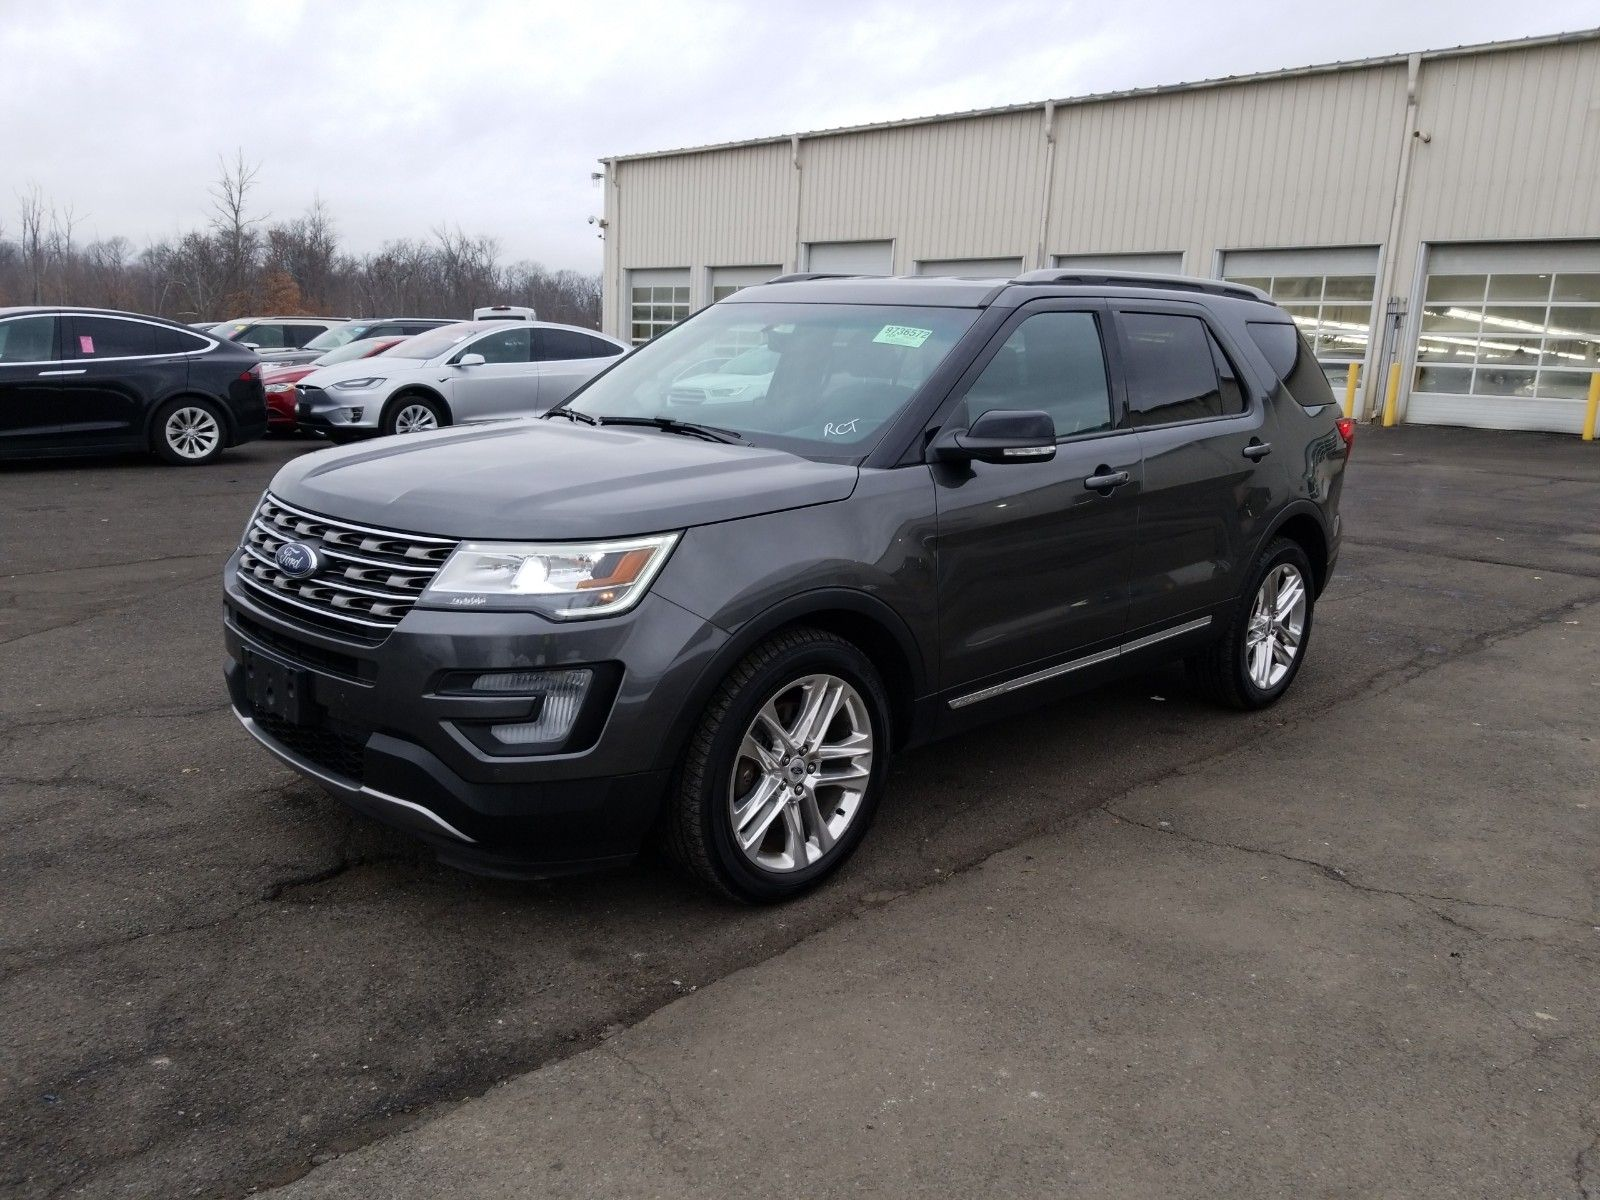 2017 Ford Explorer 3.5. Lot 99911944134 Vin 1FM5K8D81HGA96895